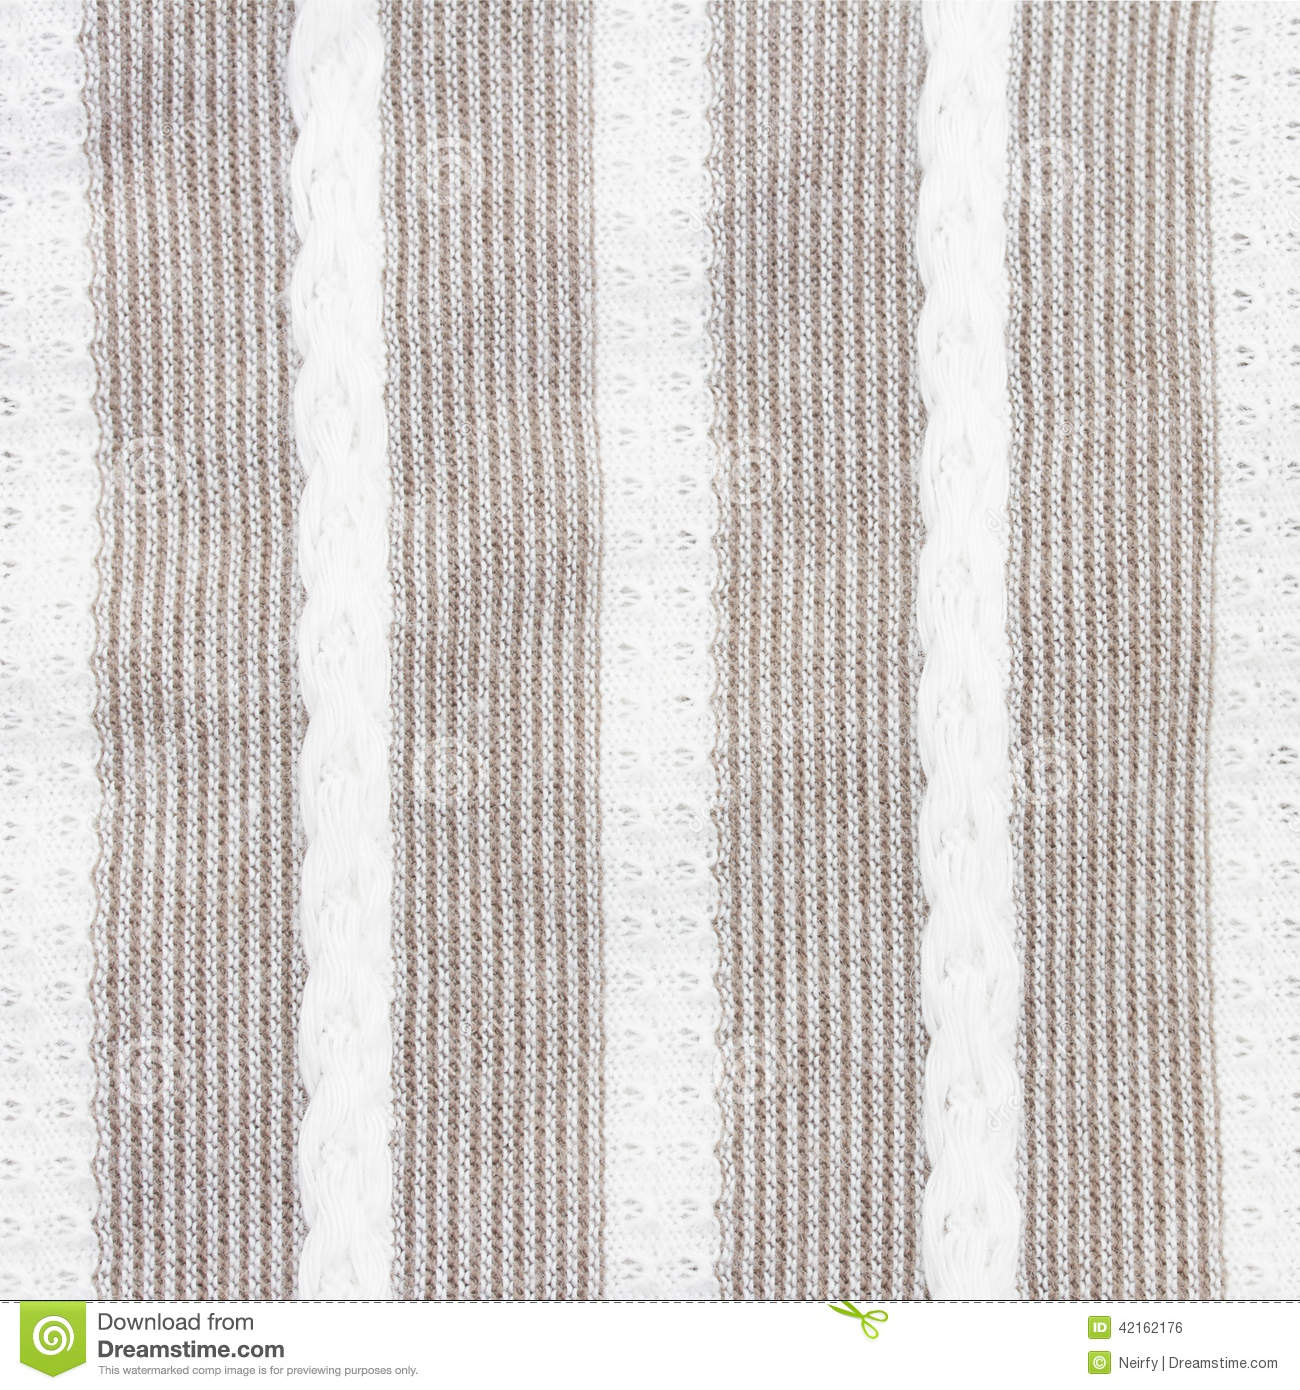 Background batik pattern stock photography image 803022 - Thai Silk Fabric Pattern Background Gray And White Stripes Fabric Closeup Royalty Free Stock Image